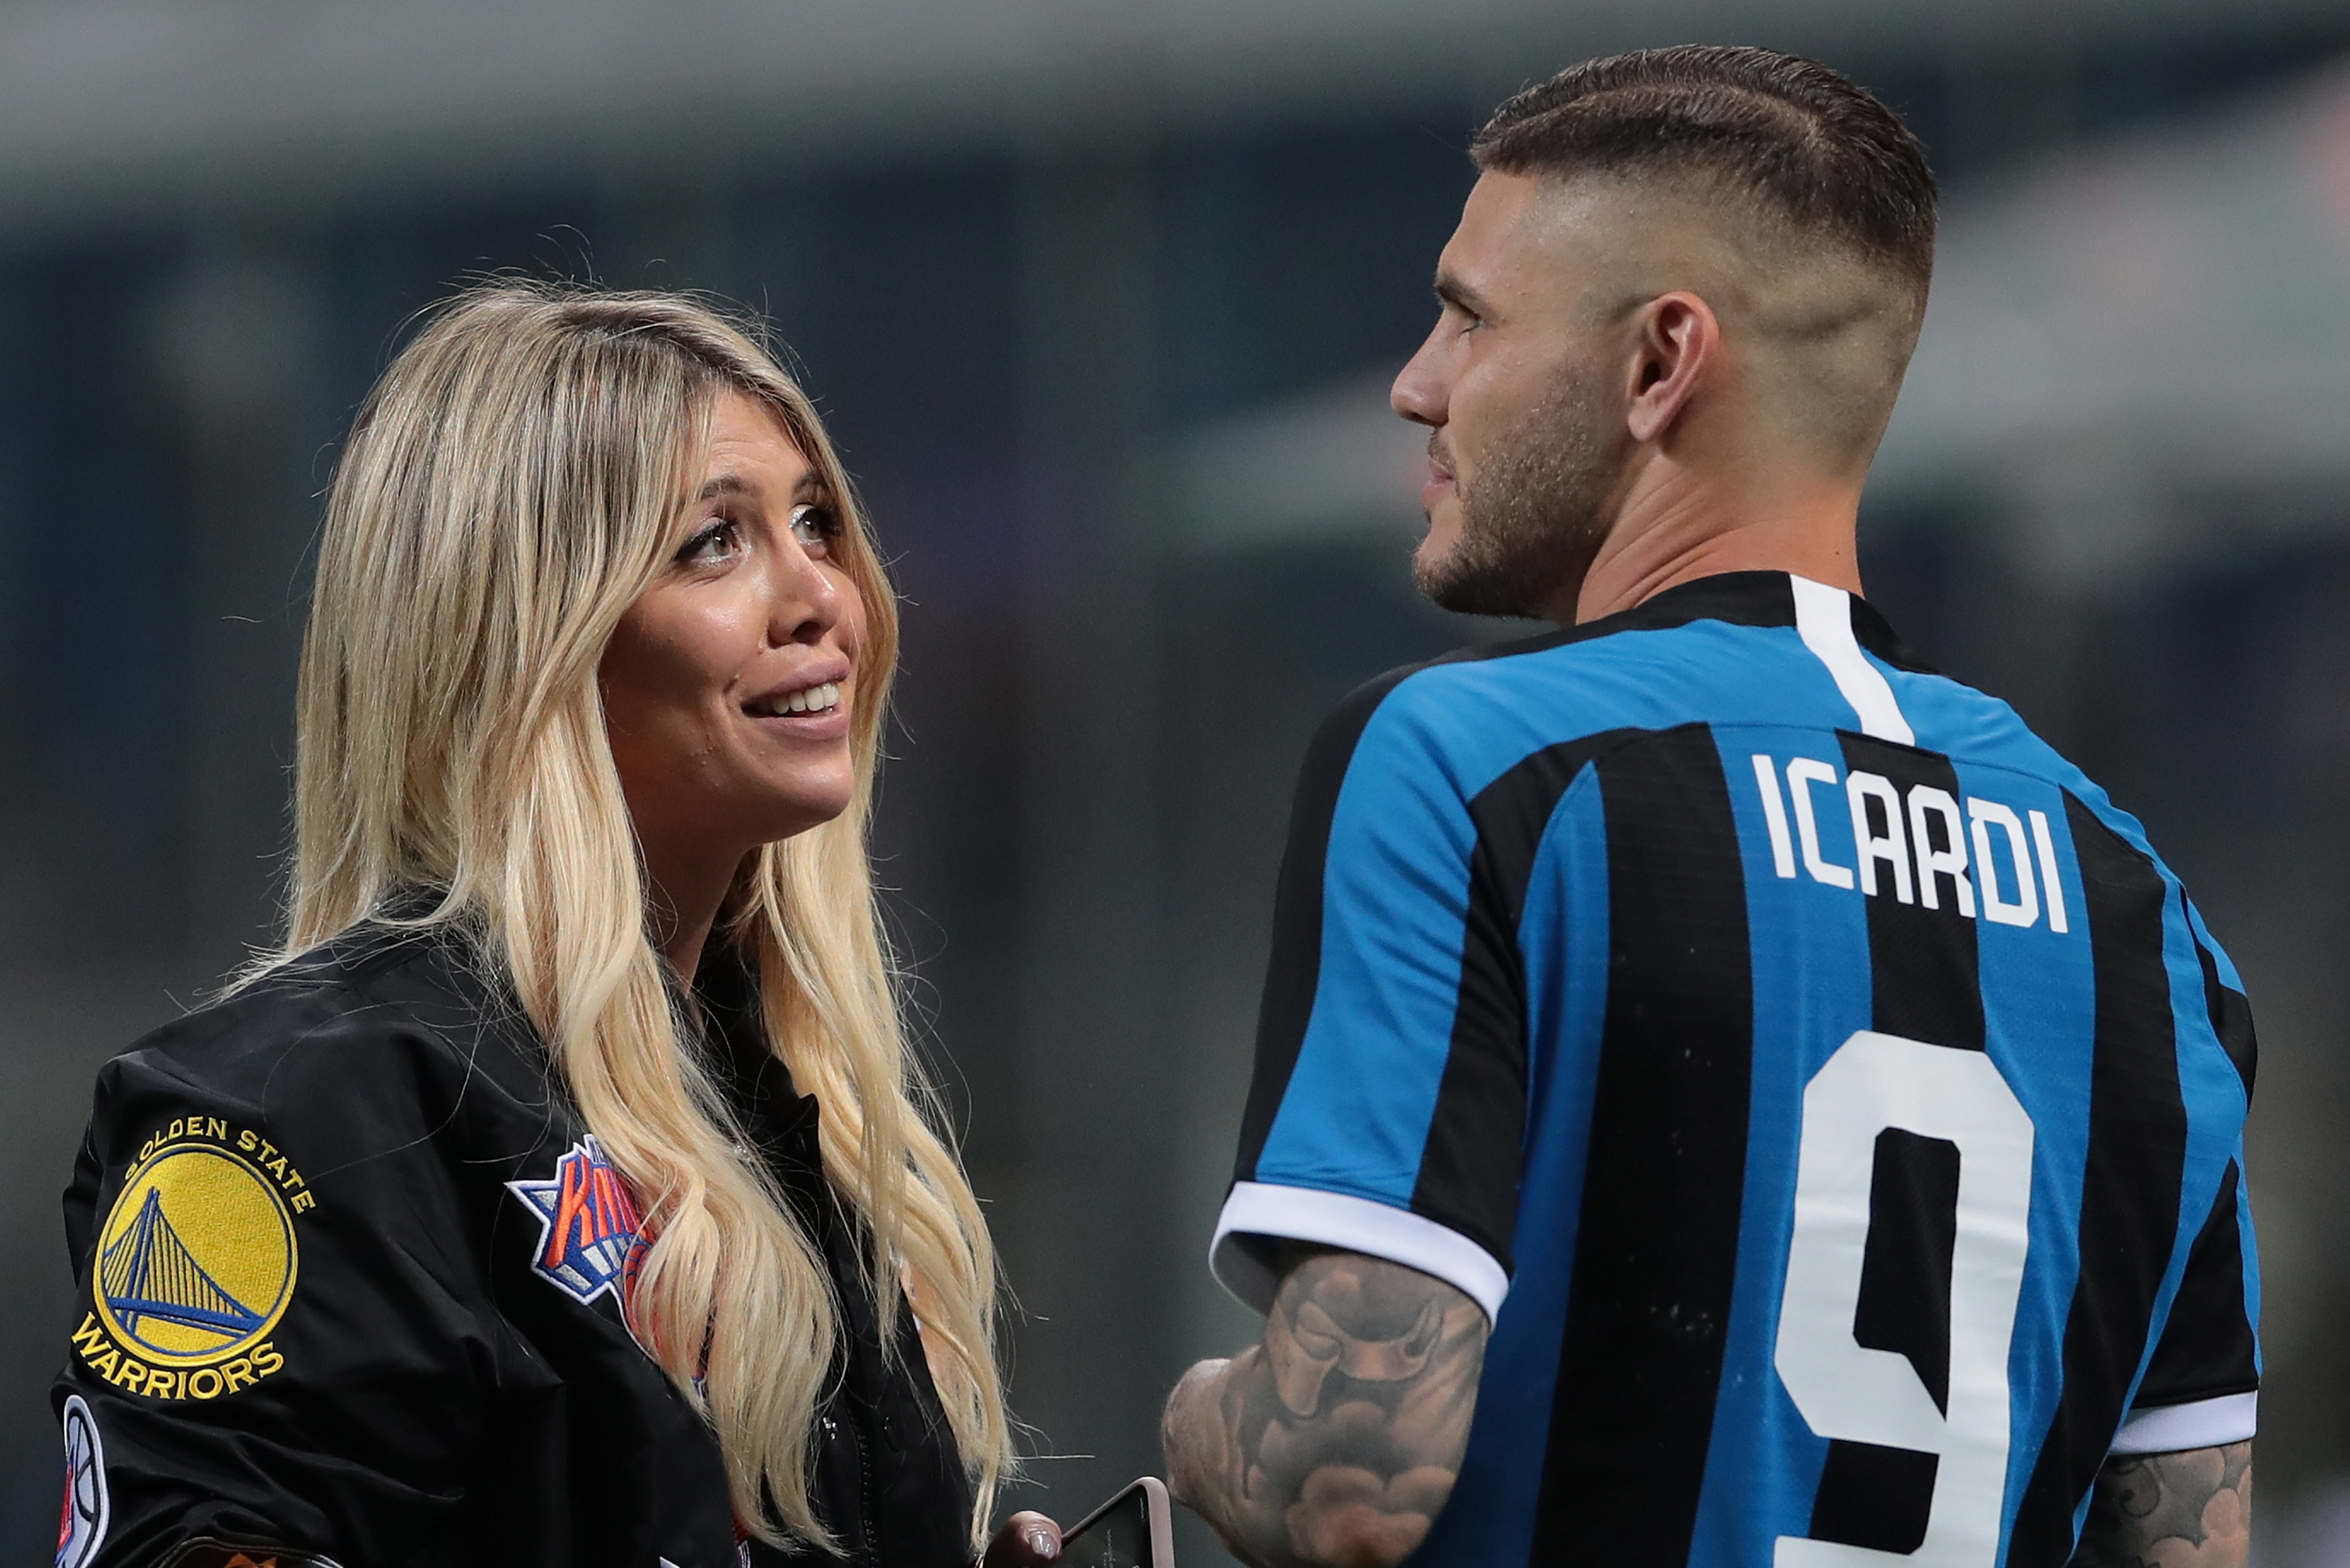 Model, Agent, Wife, Mother, Firebrand: The Many Faces of Wanda Nara